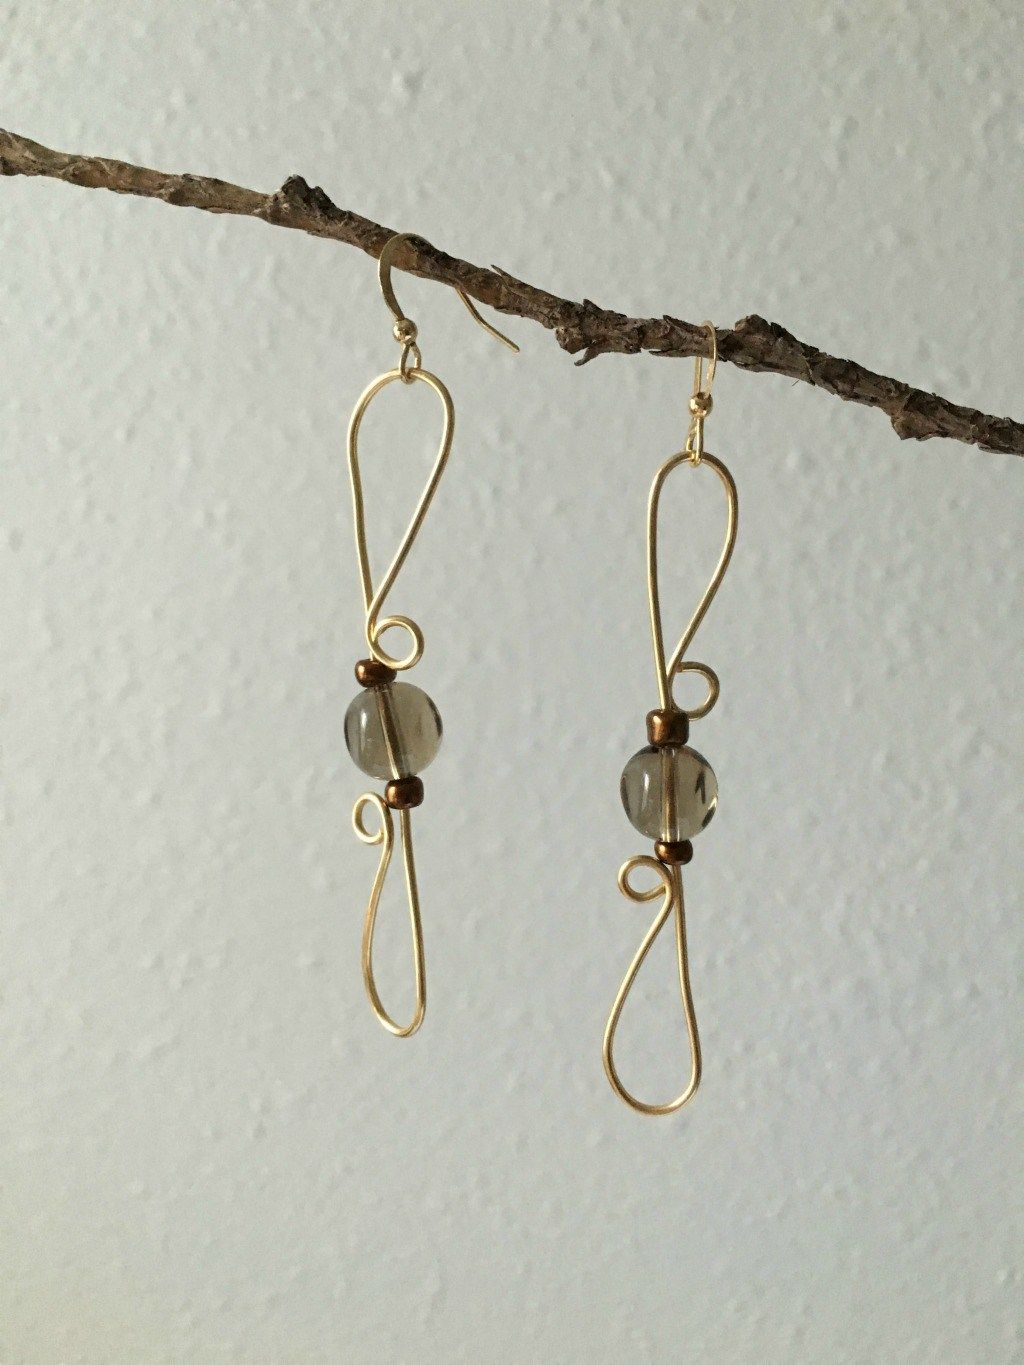 How to Make Wire Wrapped Earrings | Wire wrapping, Wraps and Tutorials